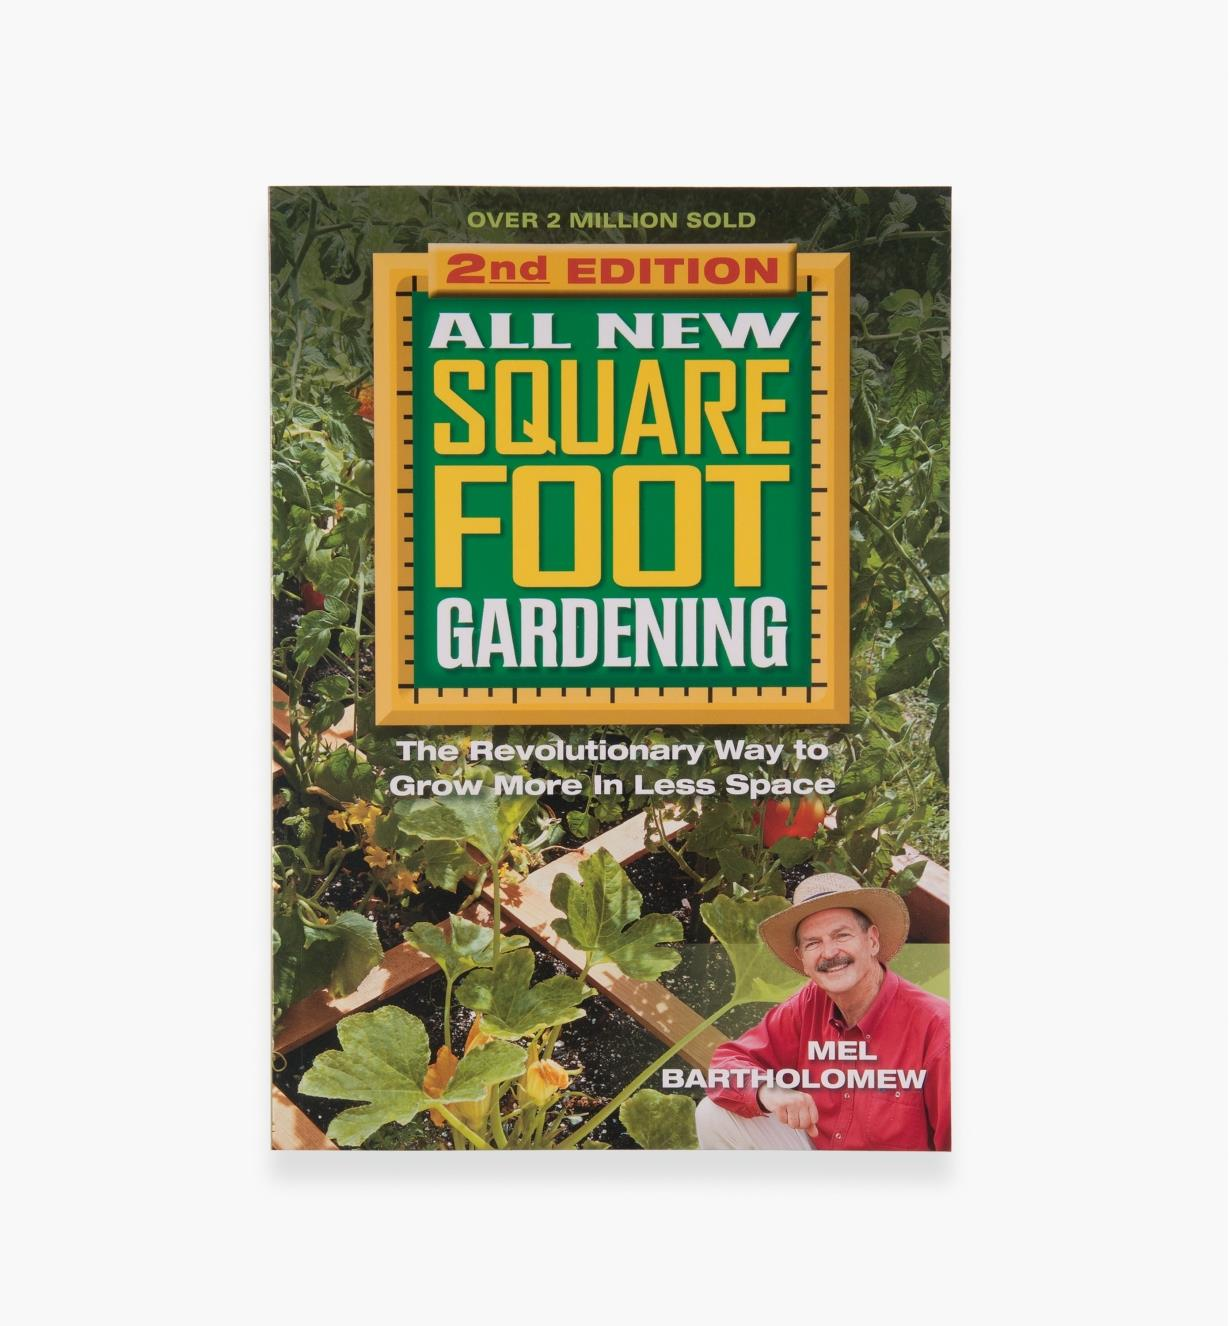 LA767 - All New Square Foot Gardening, 2nd Edition